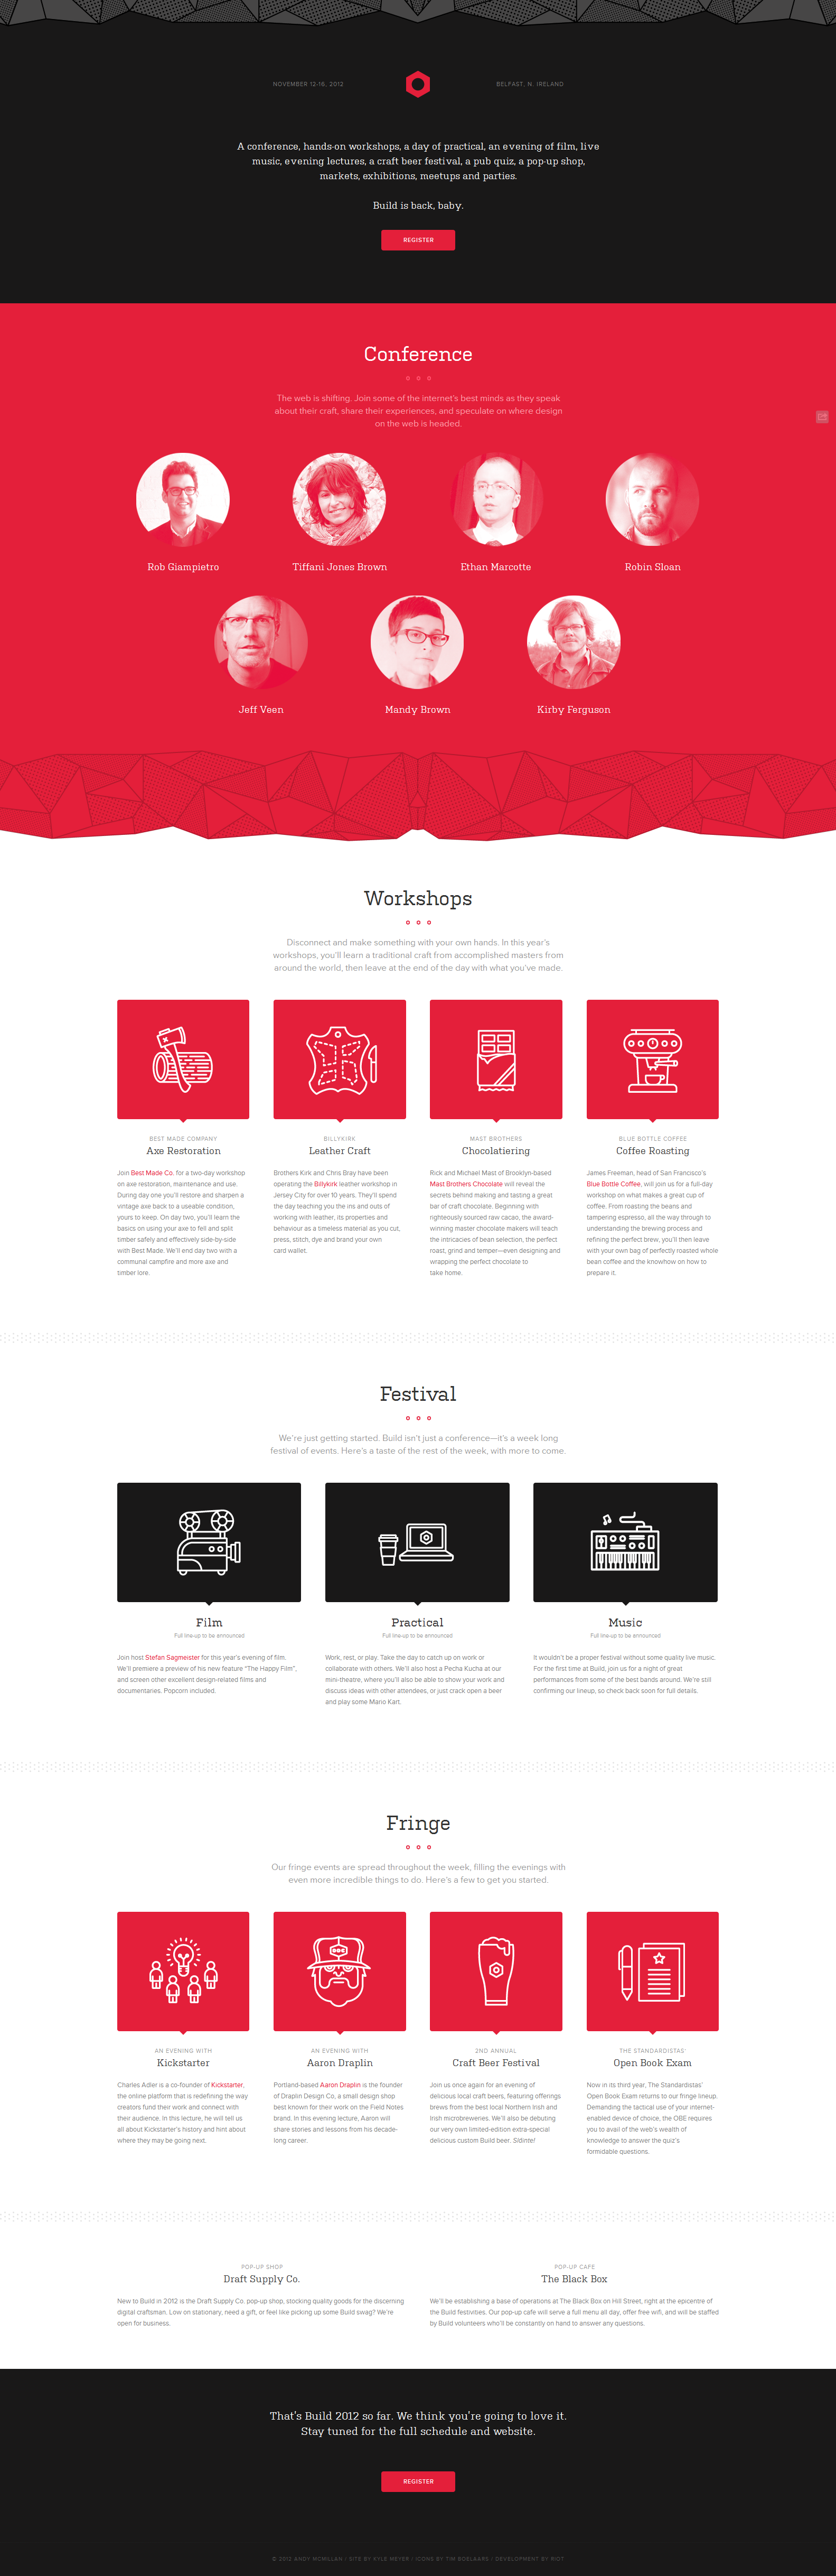 http://2012.buildconf.com/ black, red, white, amazing clean #webdesign